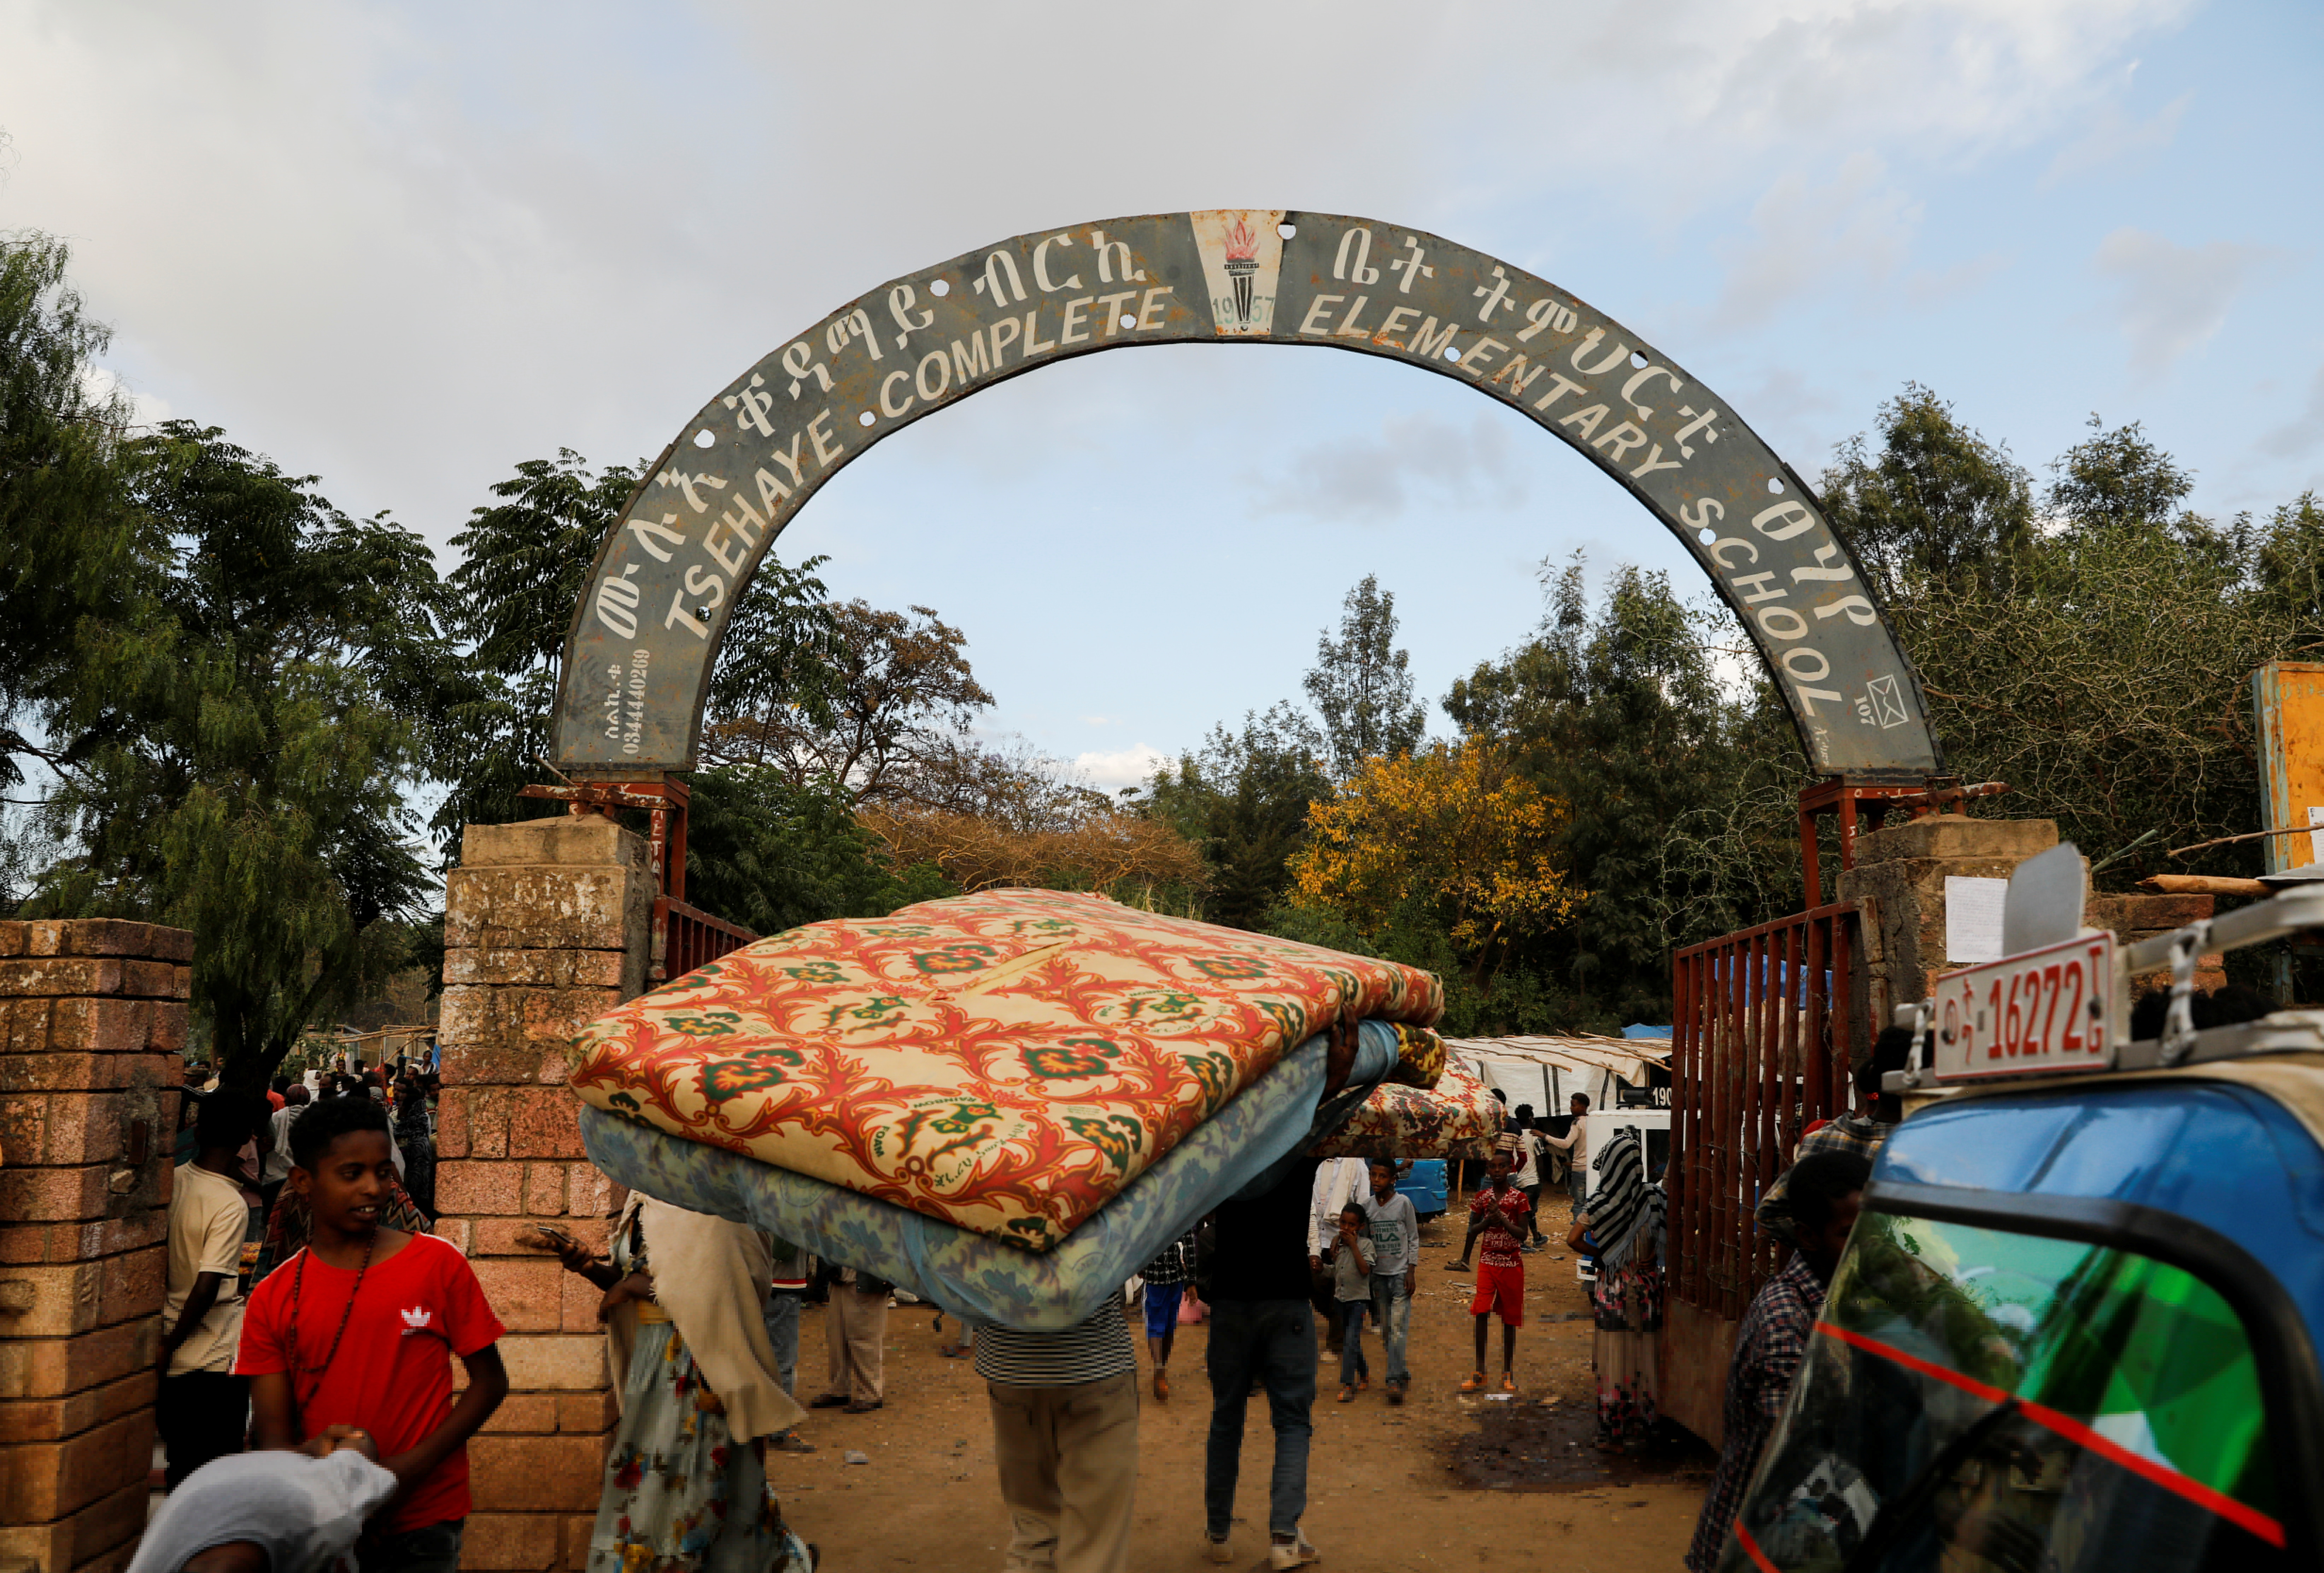 A man carries a mattress into the Tsehaye primary school, which was turned into a temporary shelter for people displaced by conflict, in the town of Shire, Tigray region, Ethiopia, March 15, 2021. REUTERS/Baz Ratner